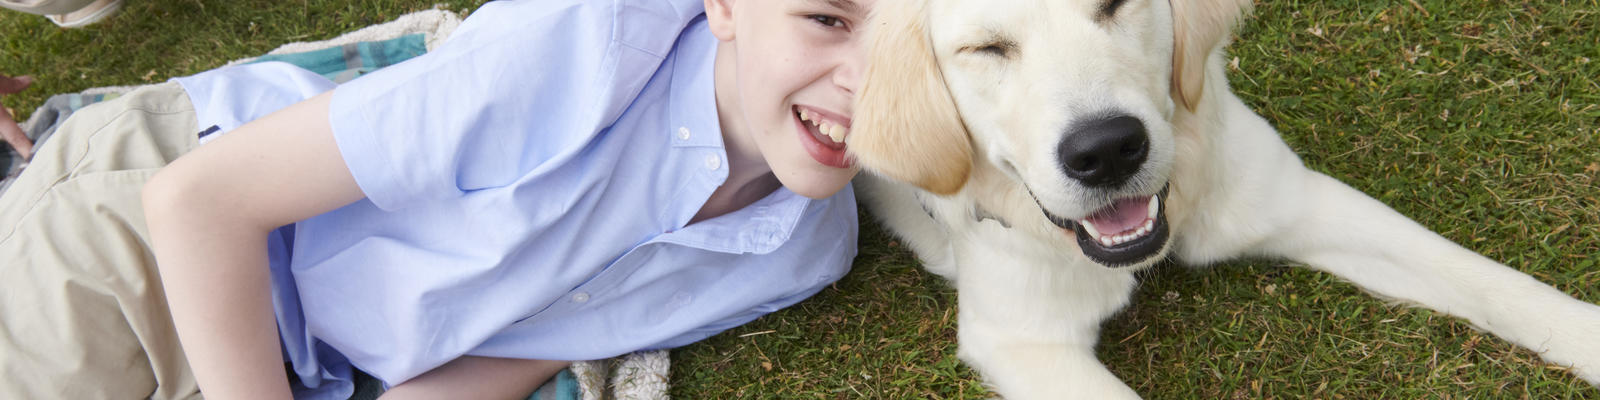 Inscape and therapy dog smiling